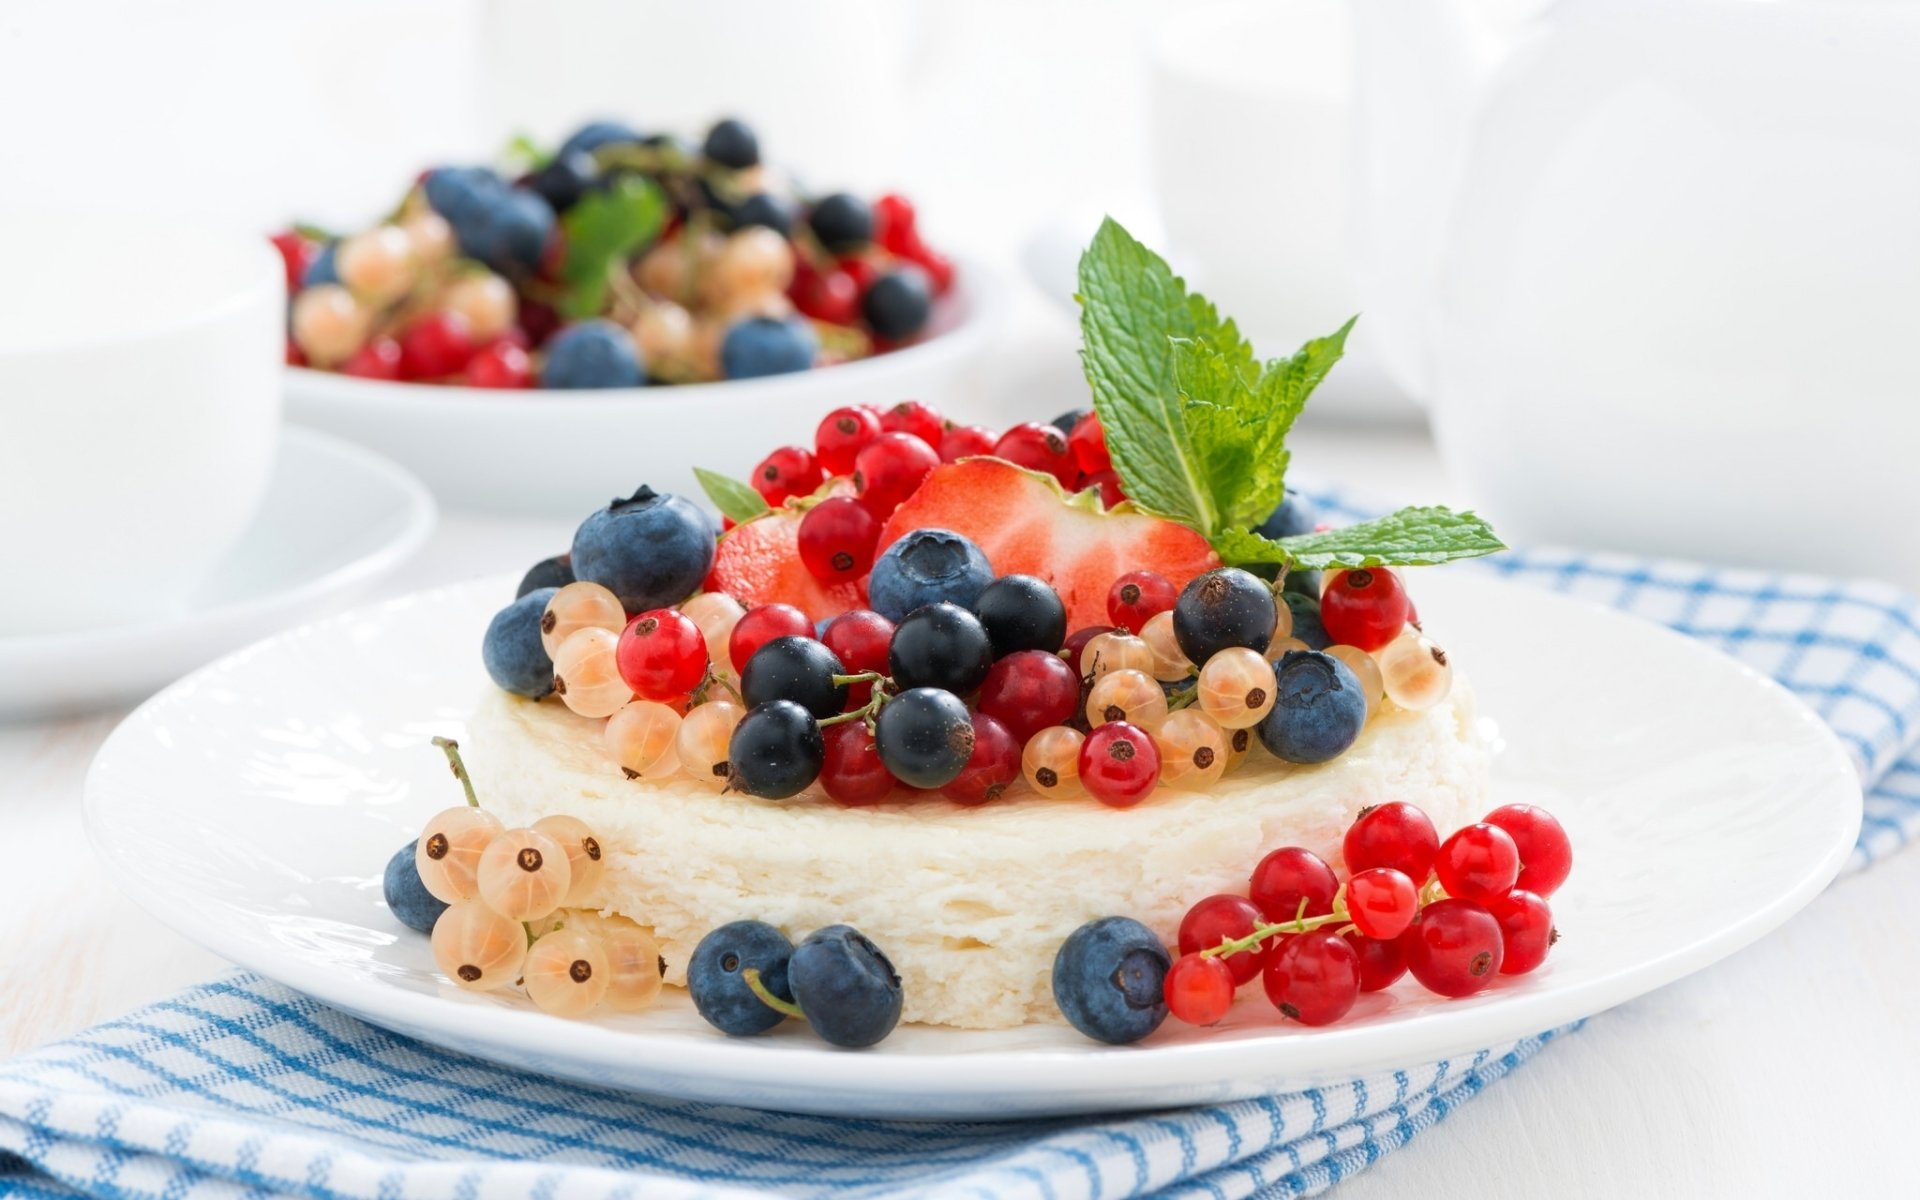 Food - Cheesecake  Currants Blueberry Berry Dessert Cake Wallpaper